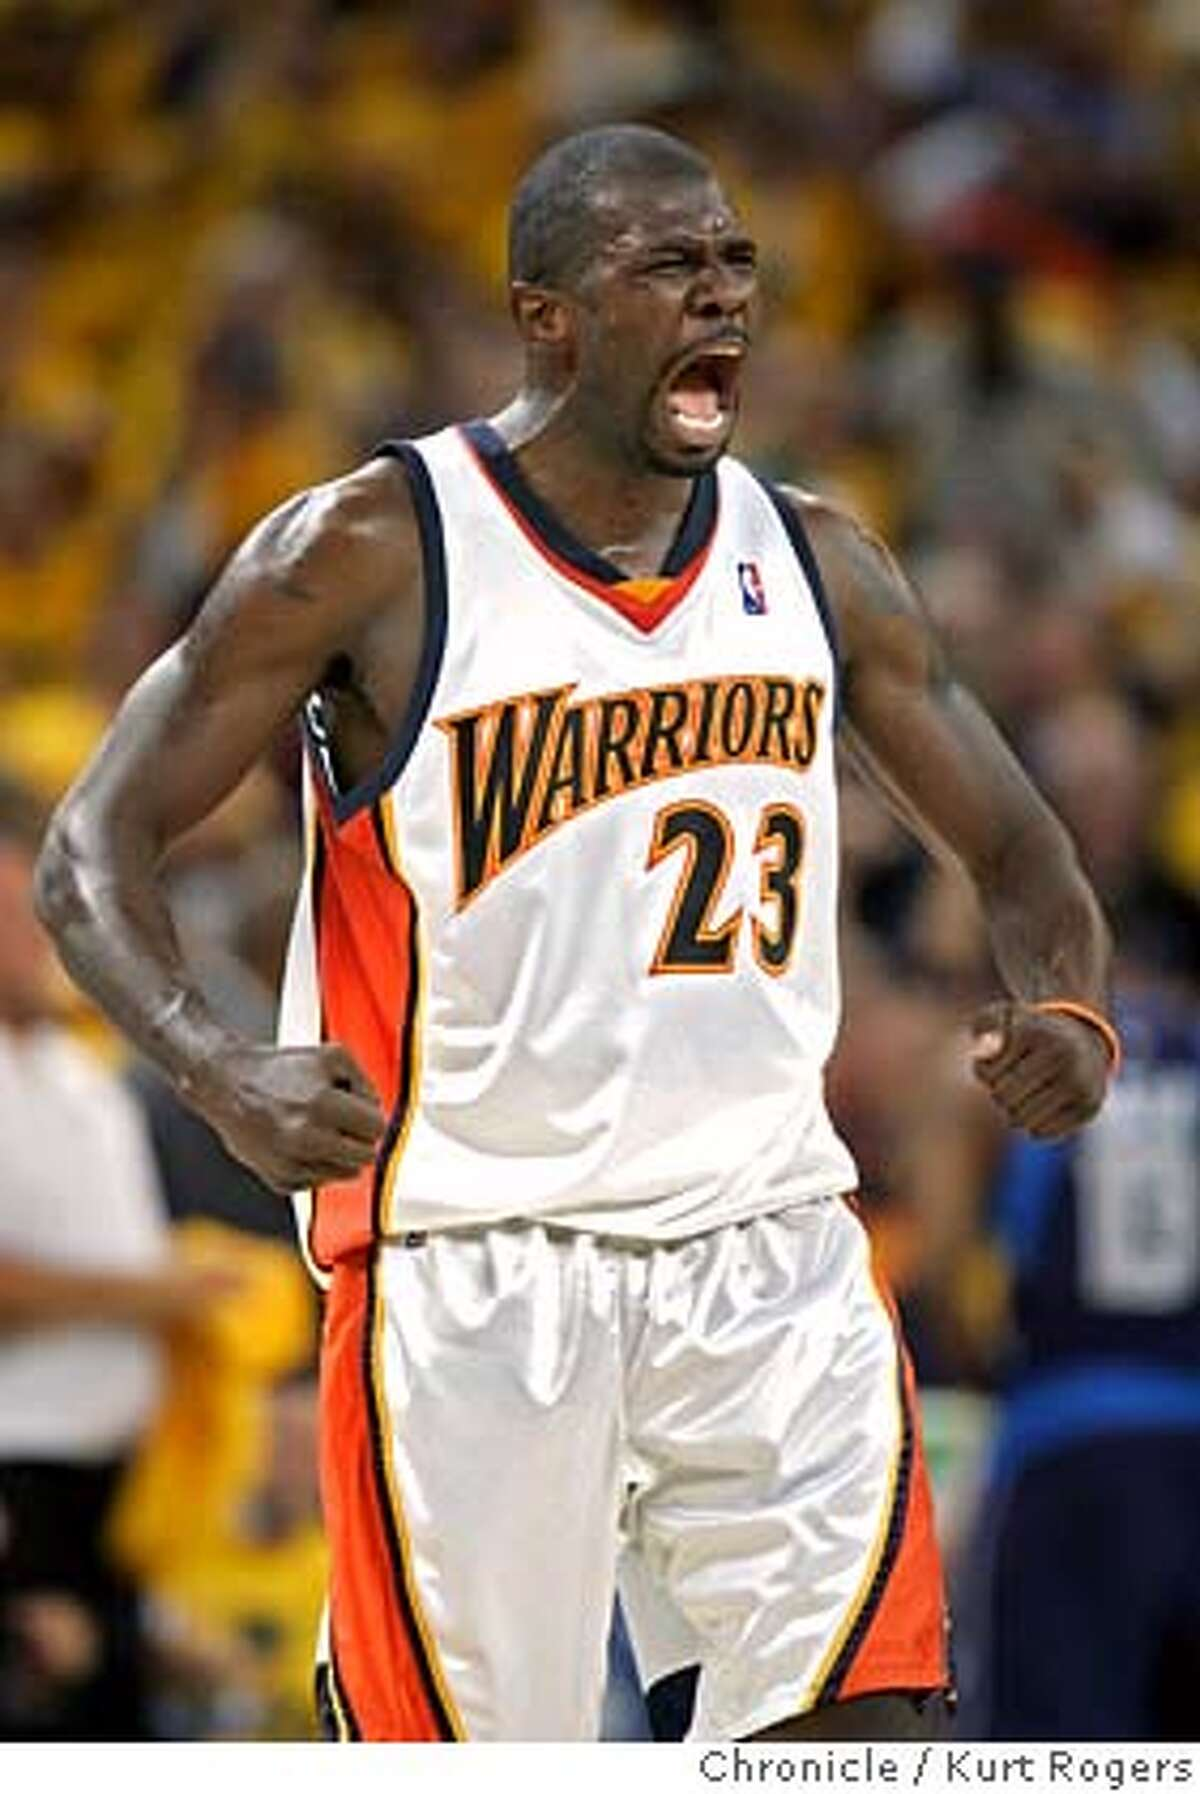 Jason Richardson after his three pointer and the steel in the 4th. made the score 99-75. Dallas Mavericks vs. Golden State Warriors in Playoff Game #6 at the Oracle arena in Oakland. THURSDAY, MAY 3, 2007 KURT ROGERS SAN FRANCISCO SFC KURT ROGERS/THE CHRONICLE _P4A0150.JPG Ran on: 05-04-2007 Andris Biedrins, Baron Davis and Stephen Jackson savor the Warriors growing lead during the second half. Ran on: 05-04-2007 Baron Davis and Jason Richardson embrace in celebration of the Warriors imminent Game 6 victory late in the second half. ALSO Ran on: 05-08-2007 MANDATORY CREDIT FOR PHOTOG AND SF CHRONICLE / NO SALES-MAGS OUT